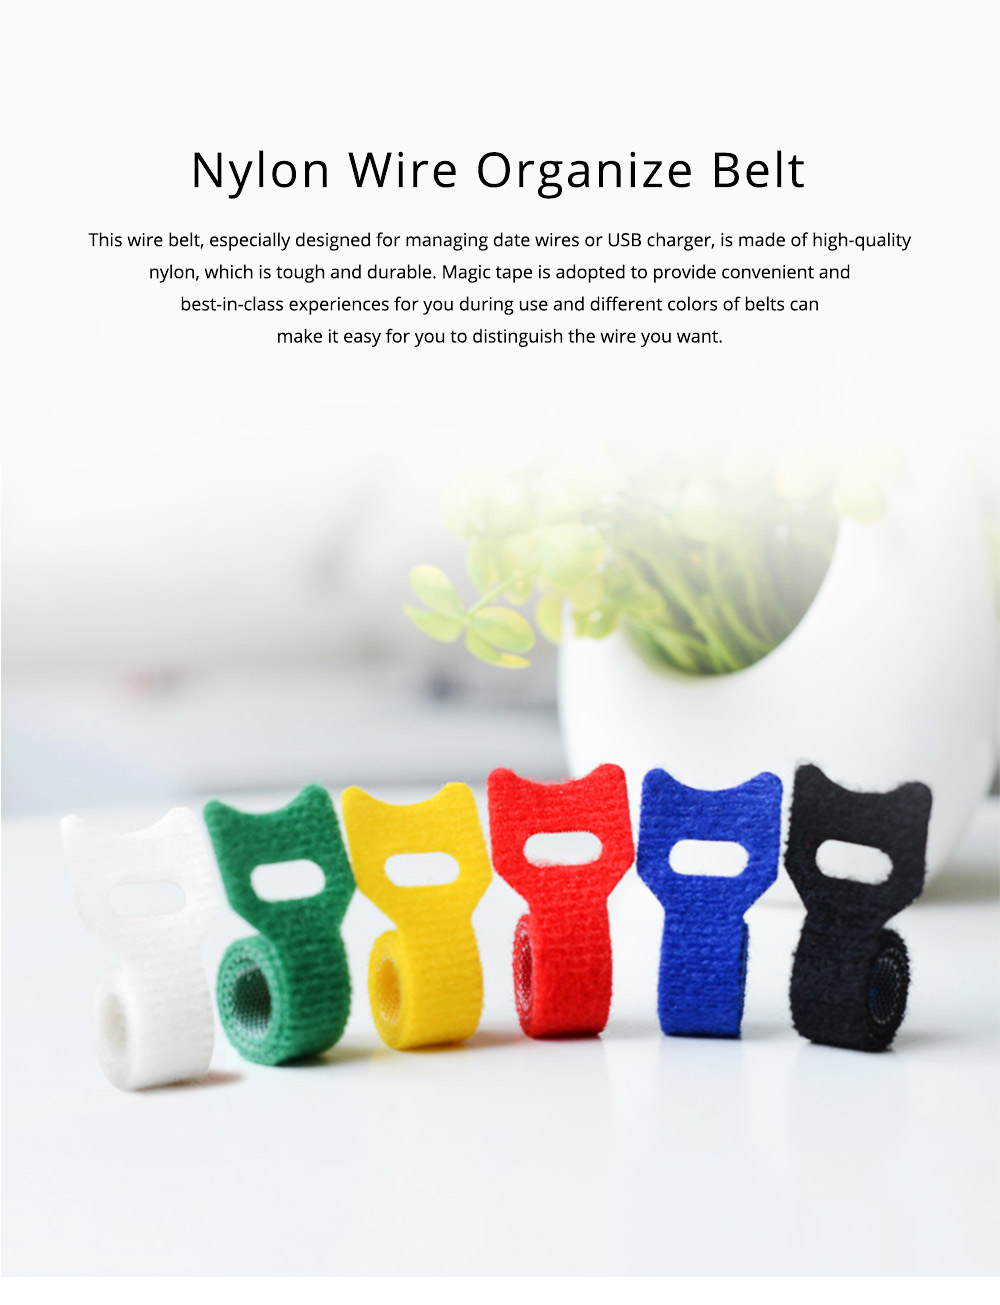 Tough Nylon Data Line Ware USB Charger Management Organizer, Colorful Charging Wire Holder Cable Magic Tape Tie Belt 0